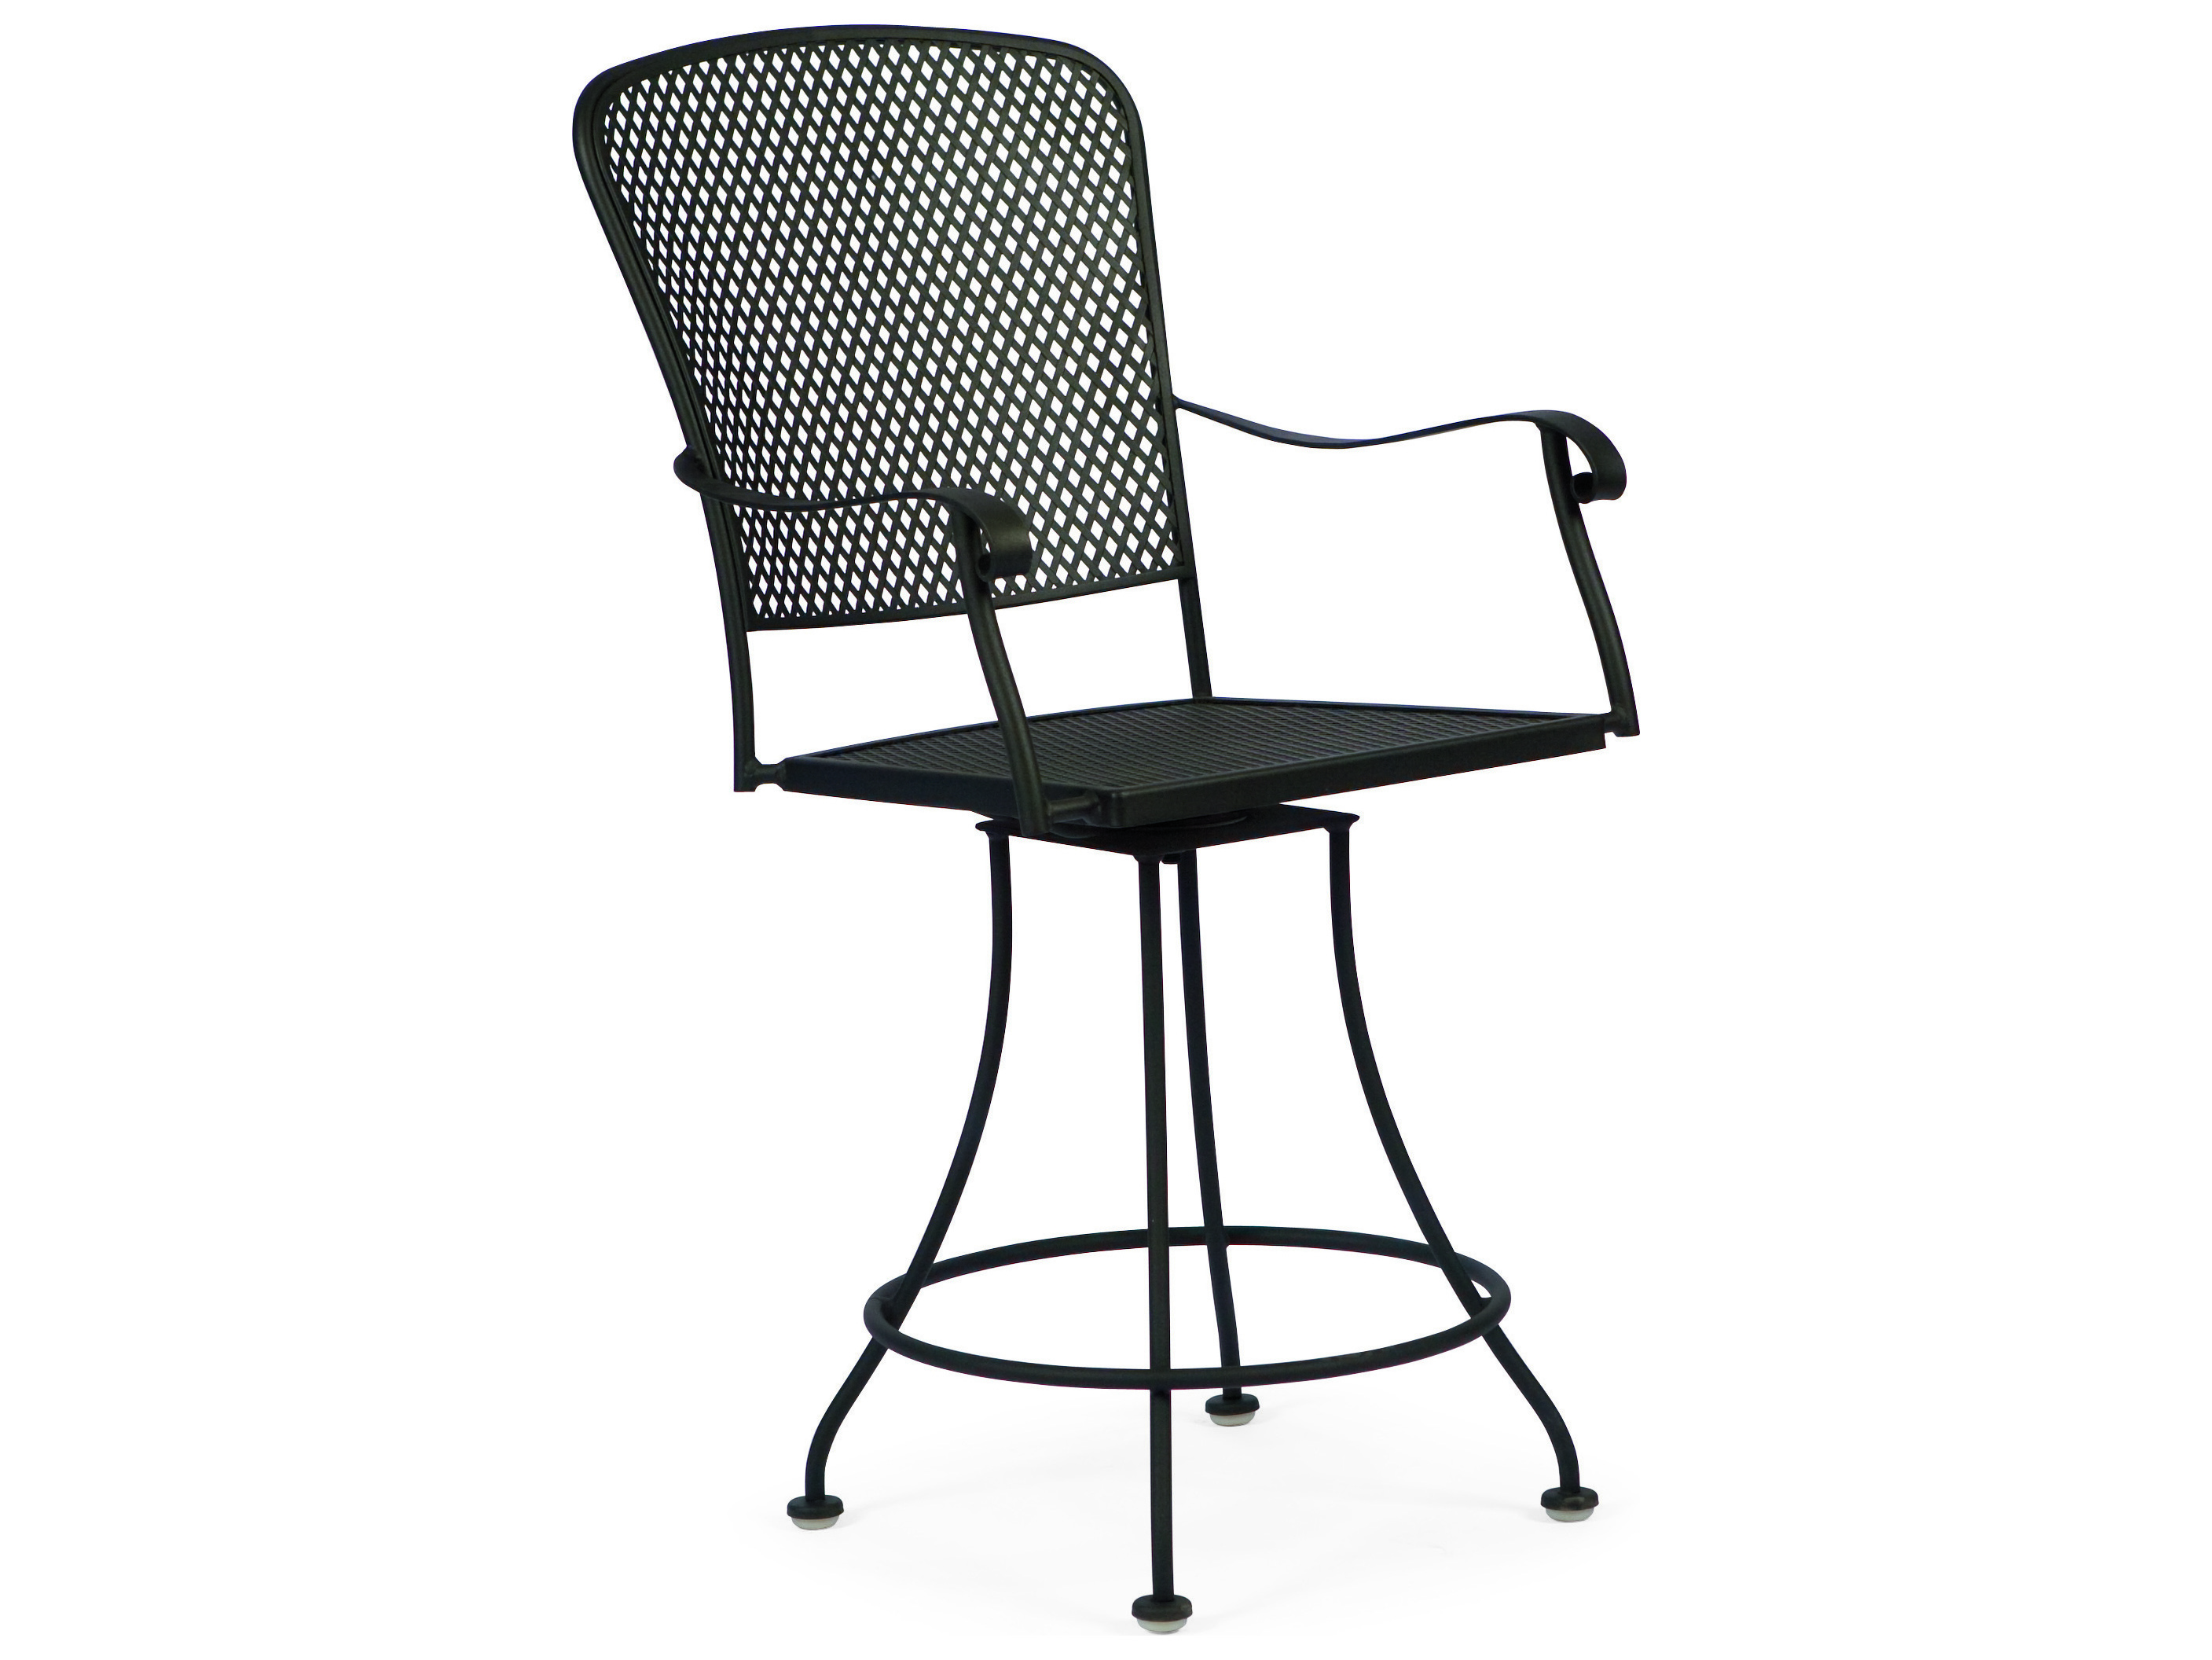 Woodard Fullerton Wrought Iron Swivel Counter Stool 2z0069